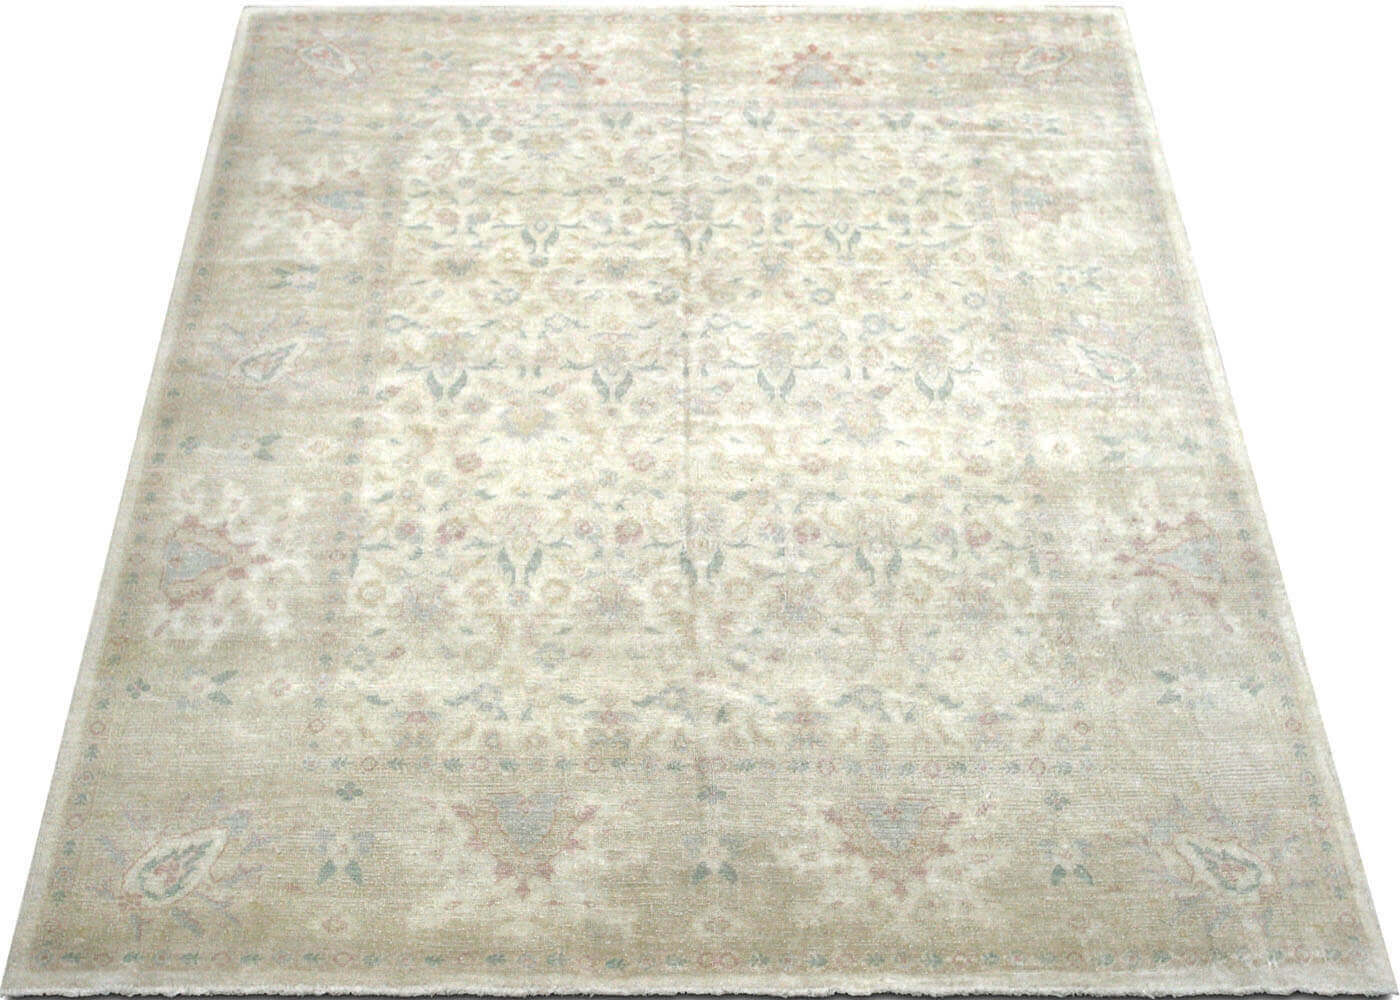 "Recently Woven Egyptian Oushak Carpet - 8'0"" x 10'2"""